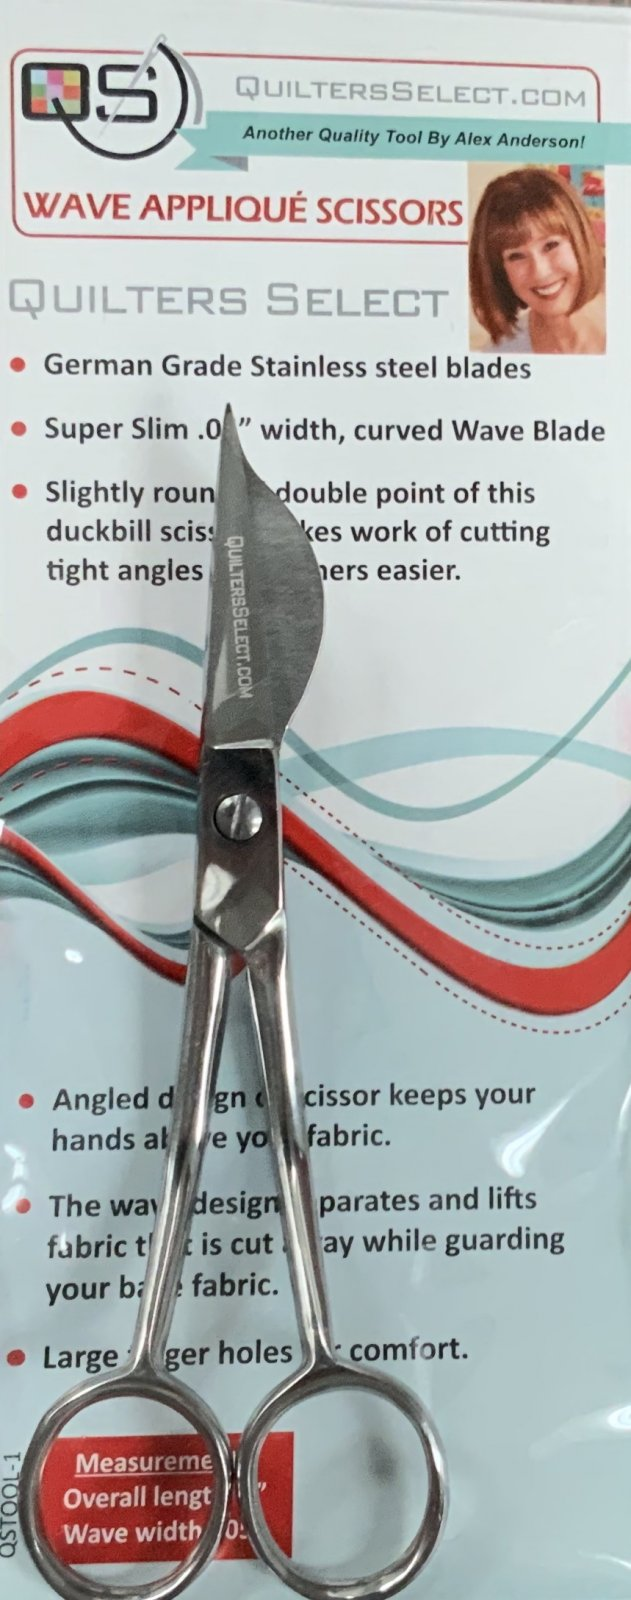 Quilter's Select Applique Scissors (Right)